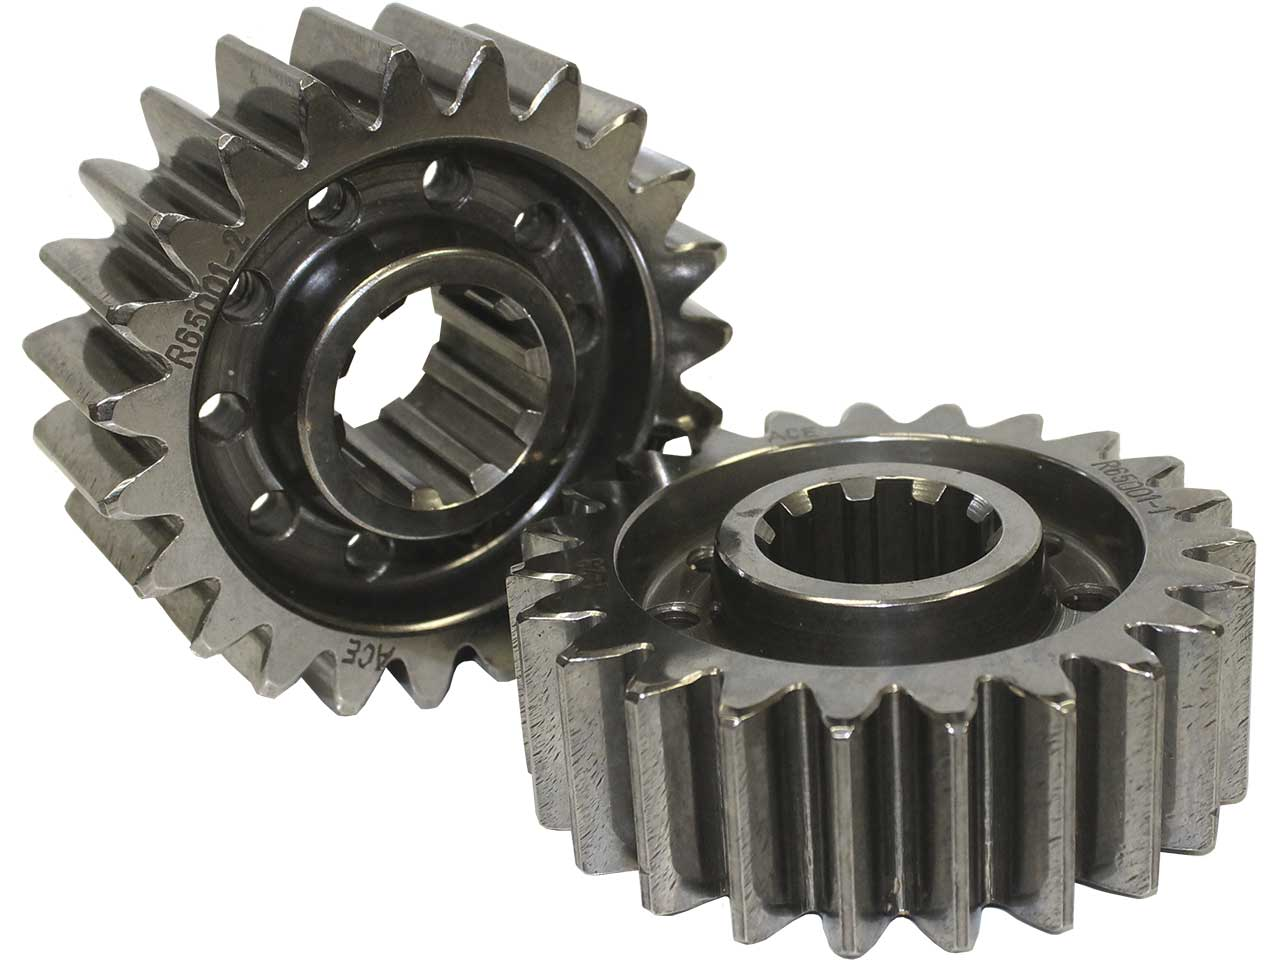 Picture of PEM Premium Lightweight Quick Change Gear Set #24 - 5.96(4.11)/7.04(4.86)